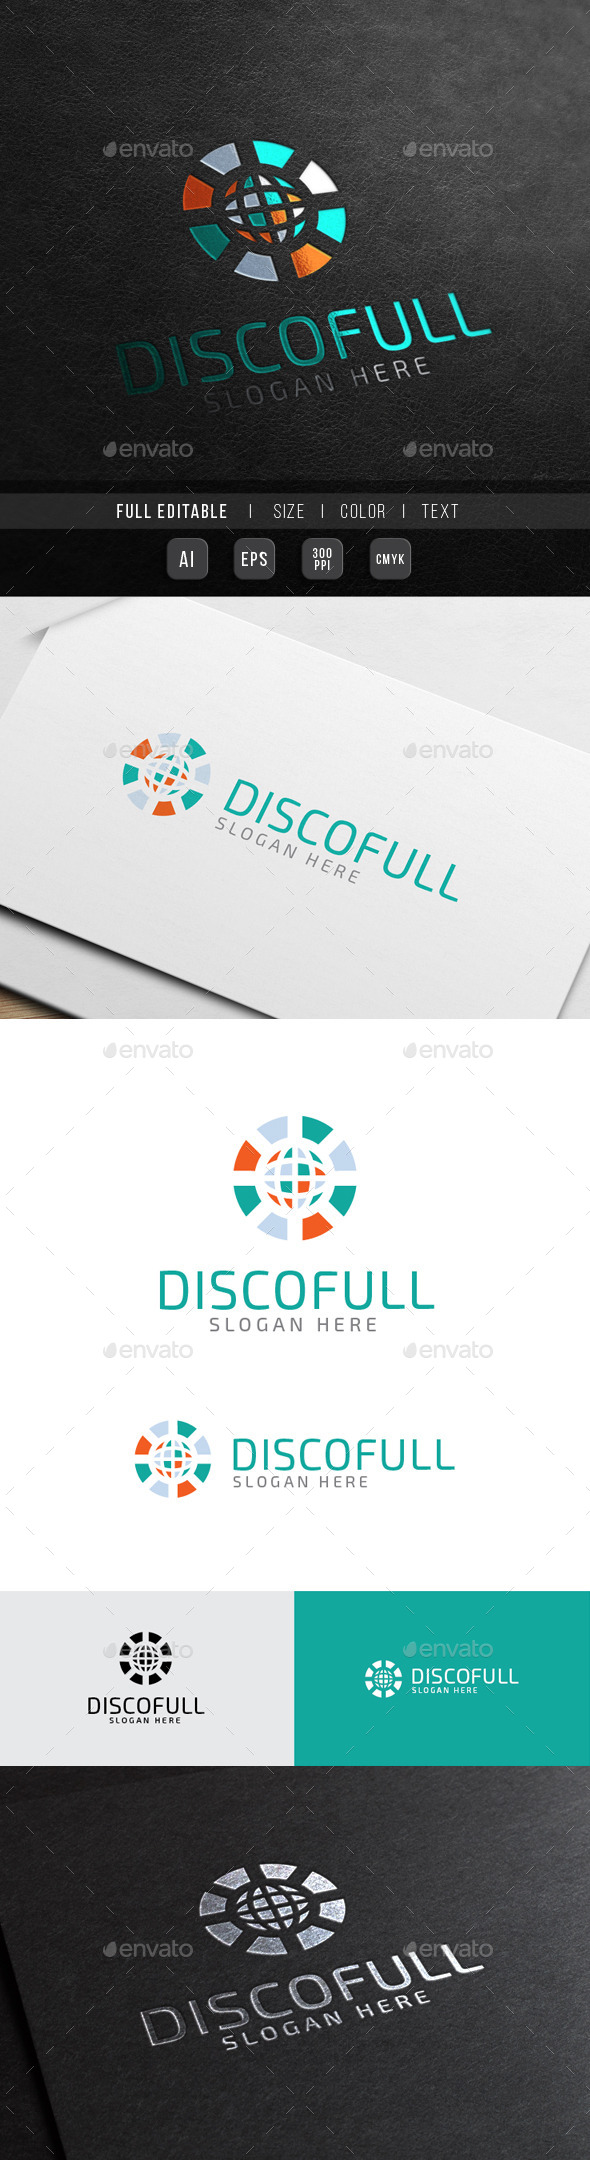 DJ World - Disco Colorful - Abstract Logo Templates